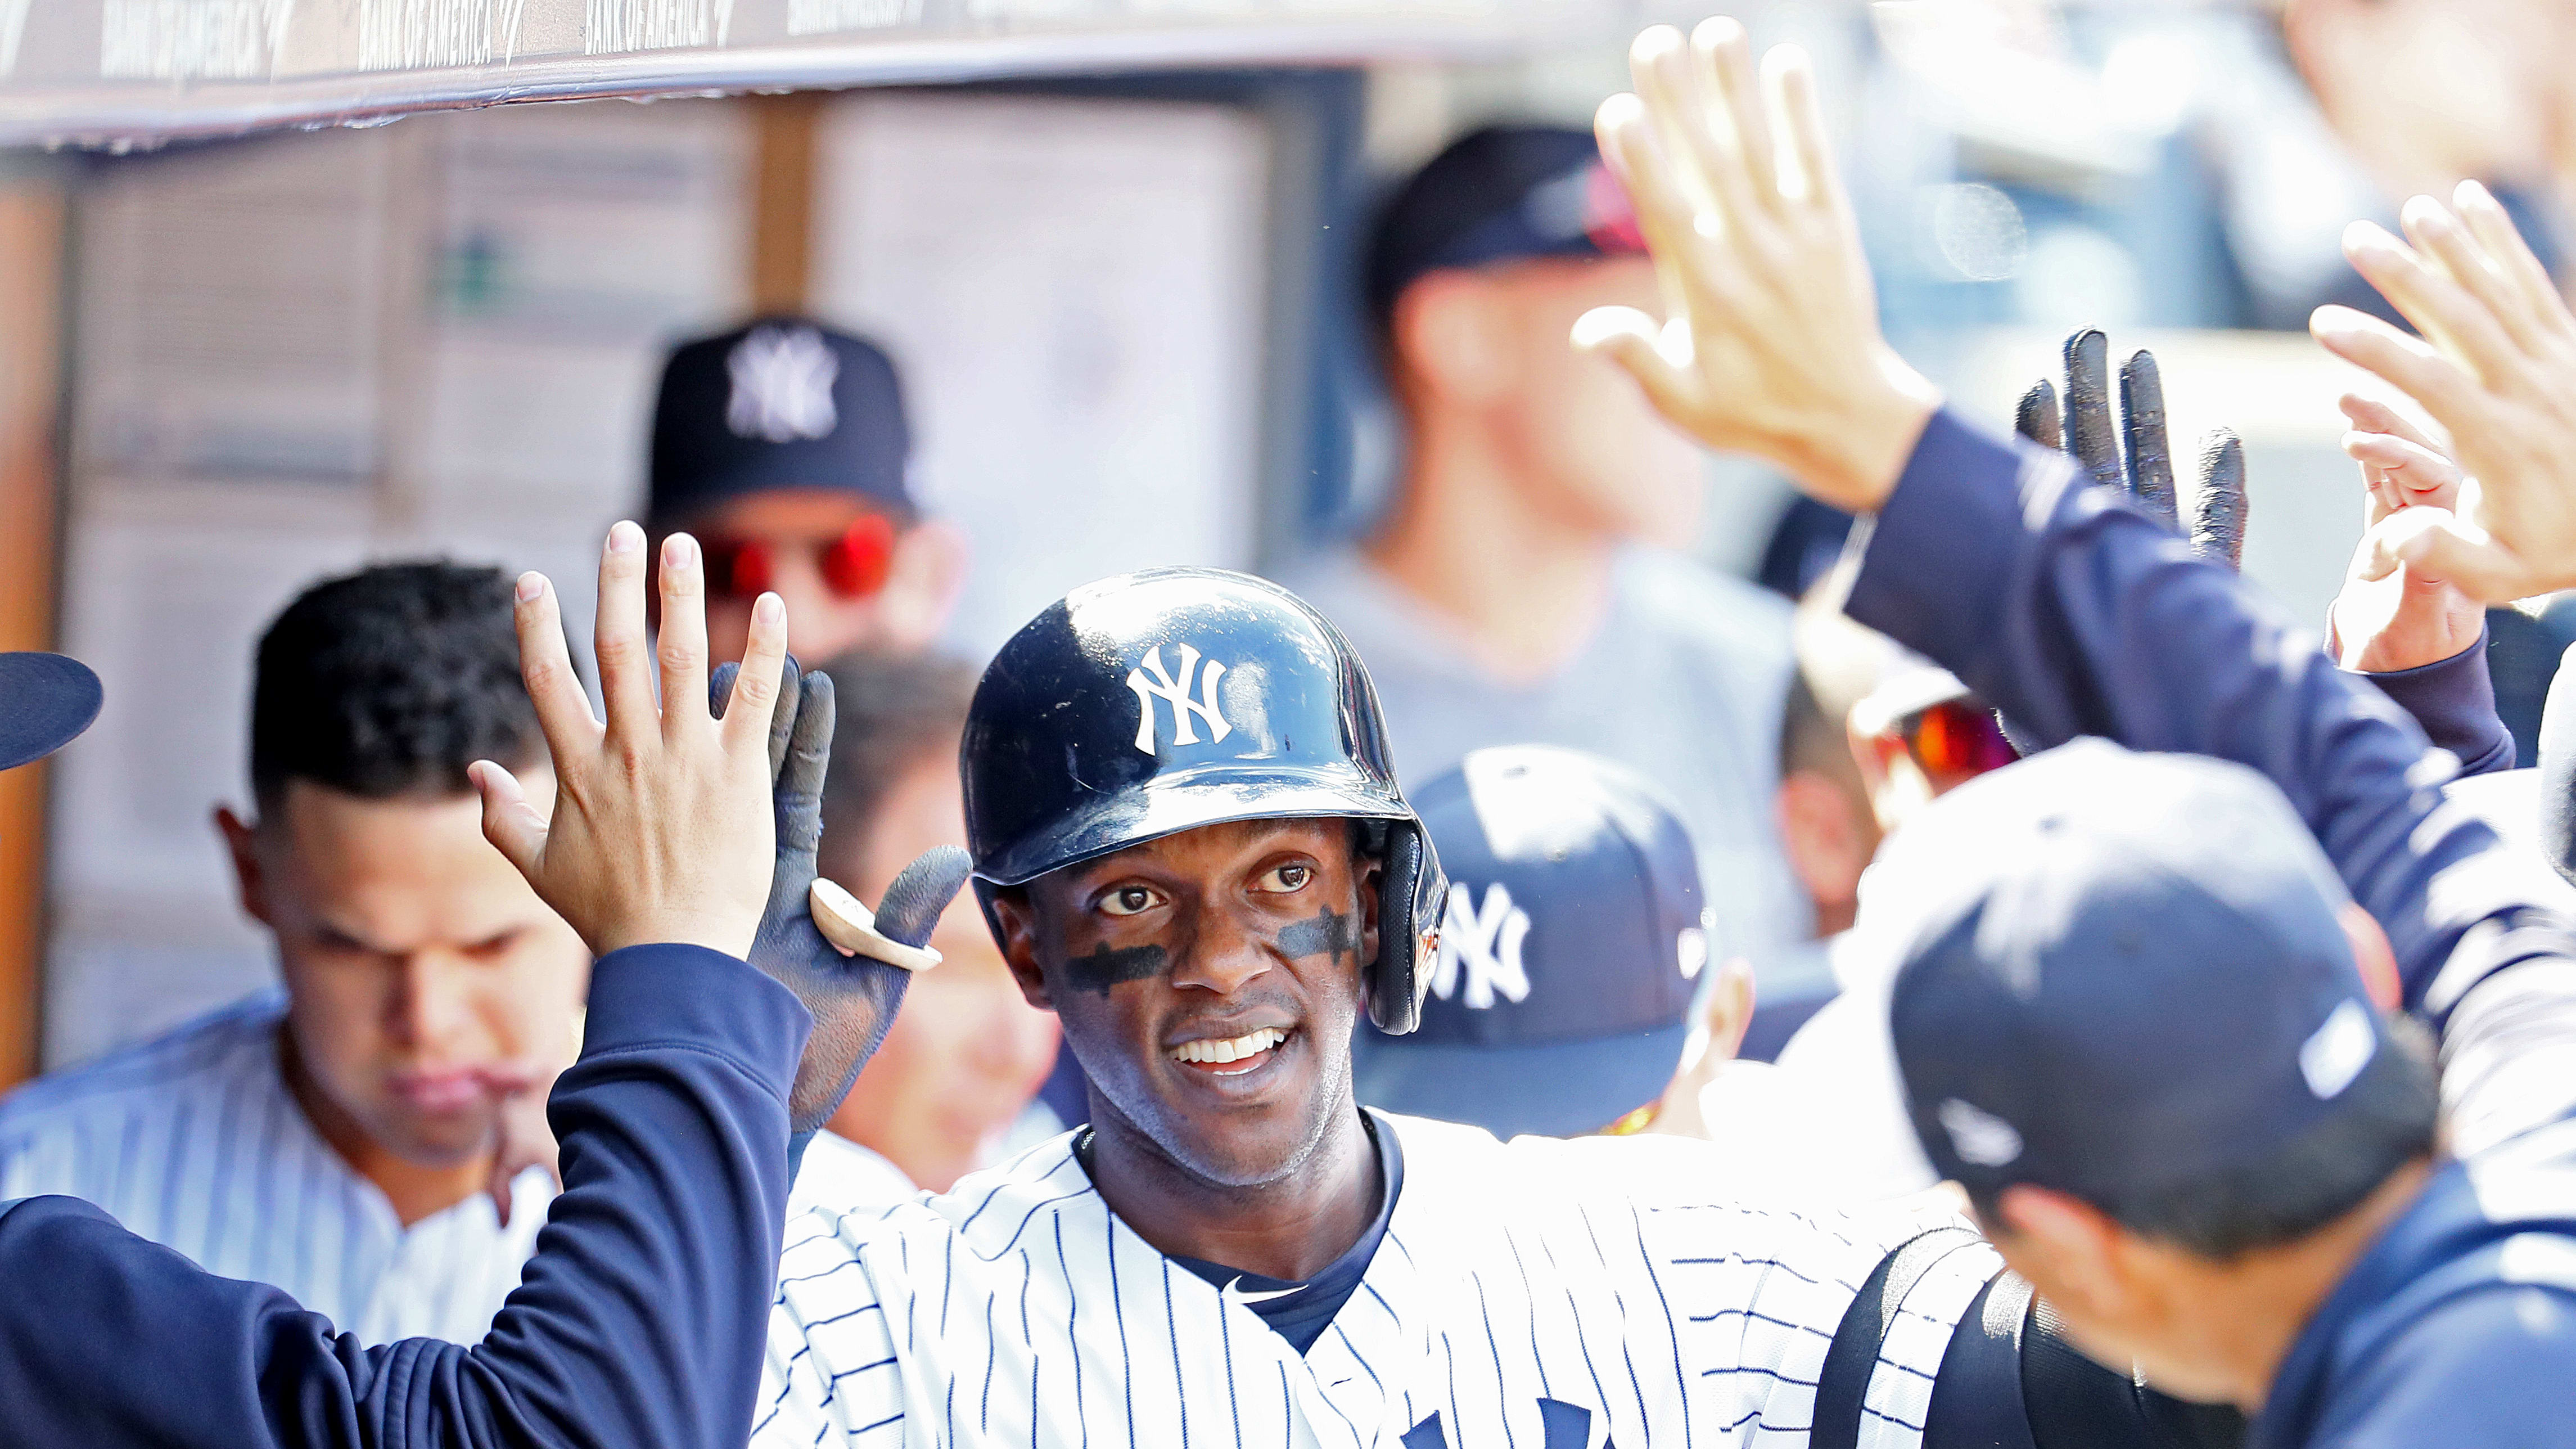 NEW YORK, NEW YORK - MAY 15:  Cameron Maybin #38 of the New York Yankees celebrates his second inning home run against the Baltimore Orioles during their game at Yankee Stadium on May 15, 2019 in New York City. (Photo by Al Bello/Getty Images)